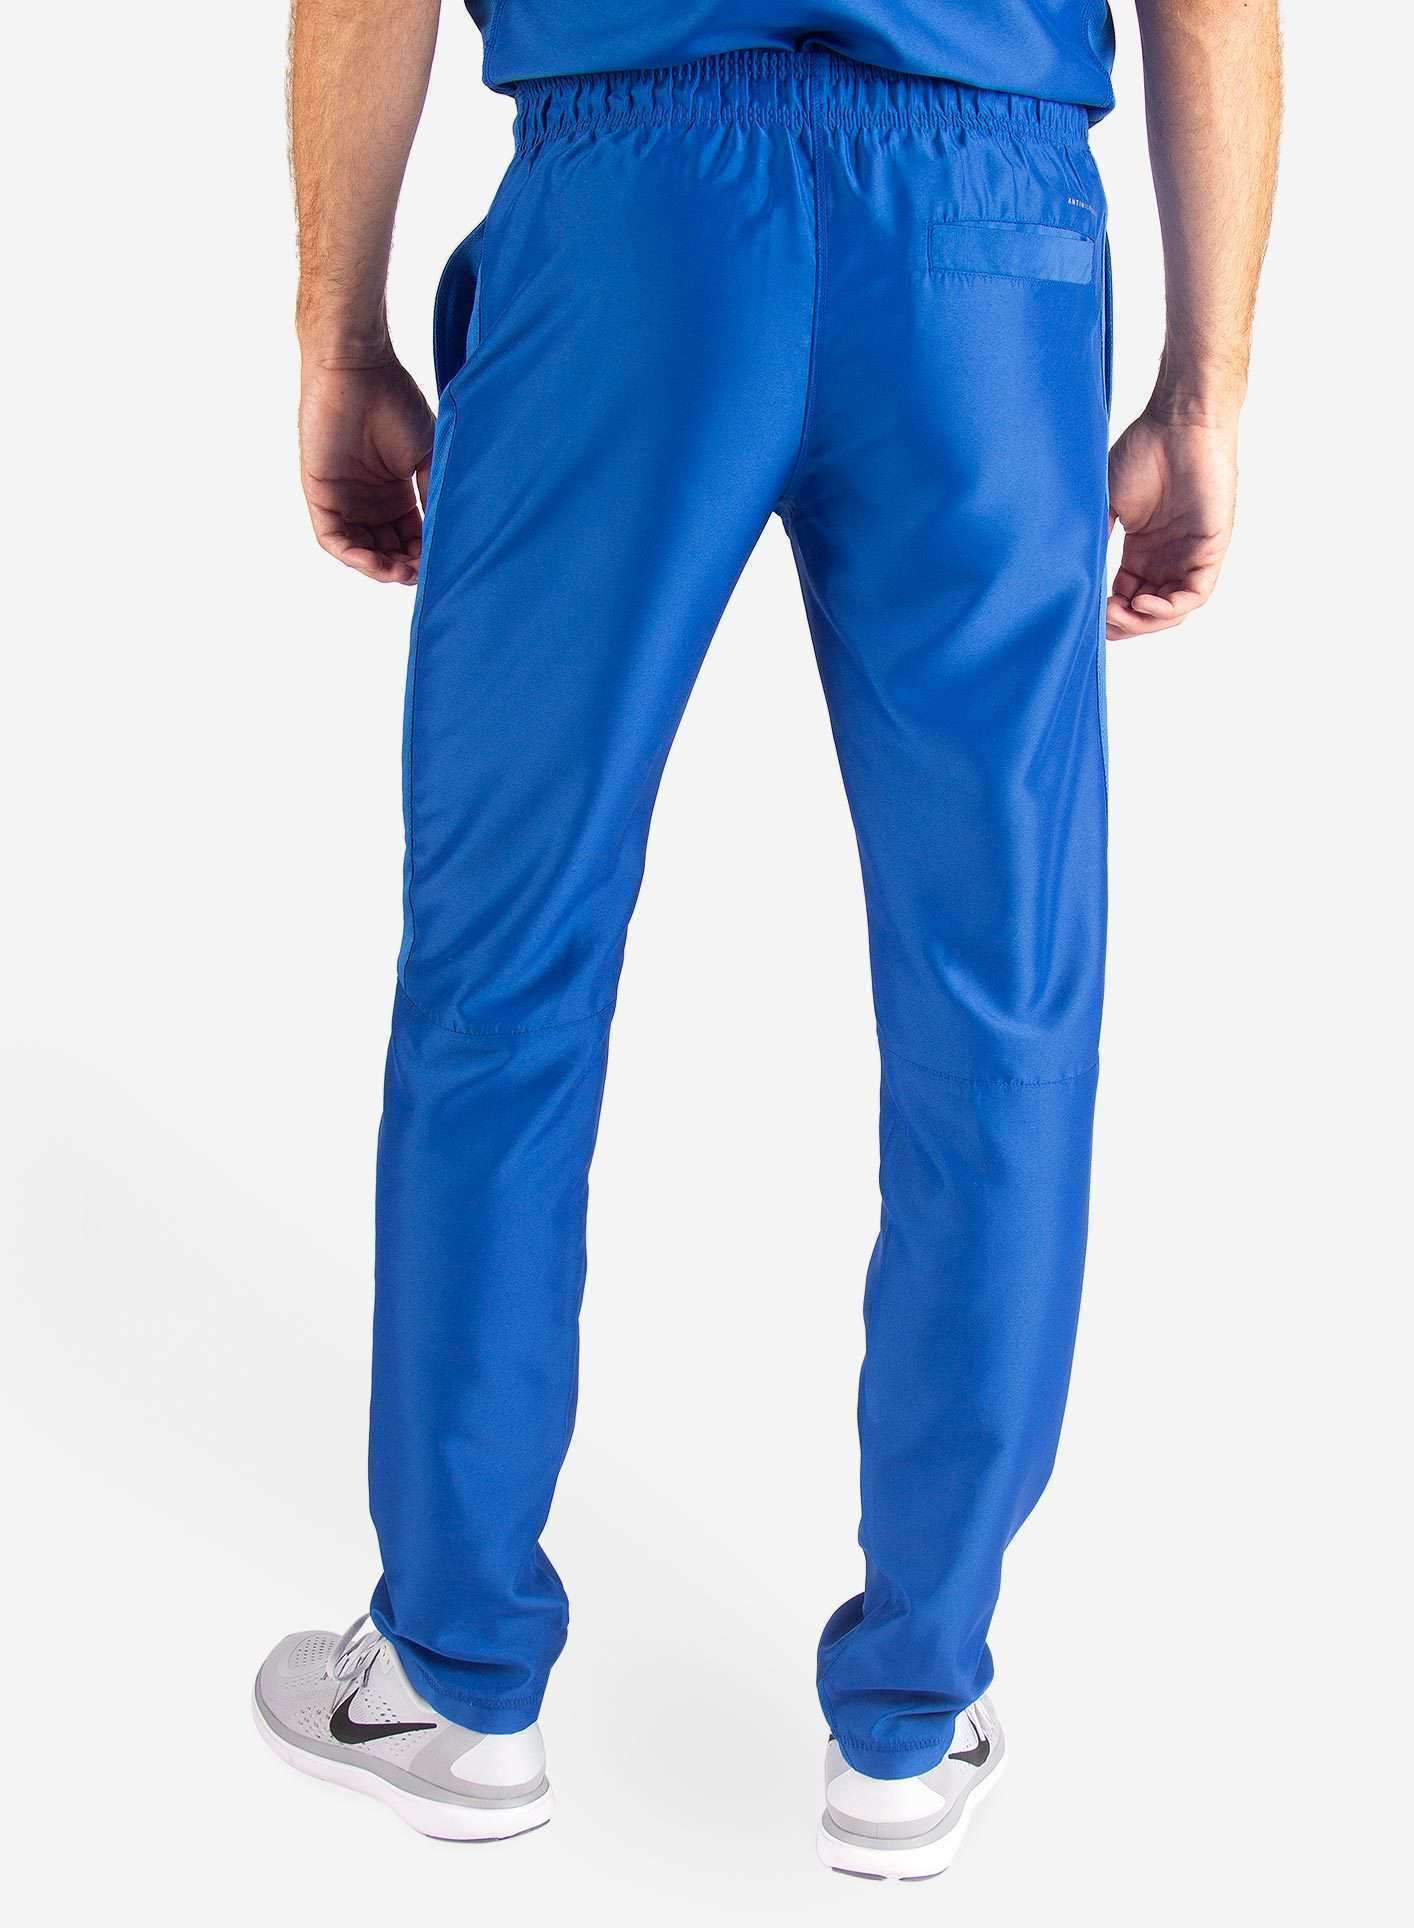 Men's Slim Fit Scrub Pants in Royal Blue back